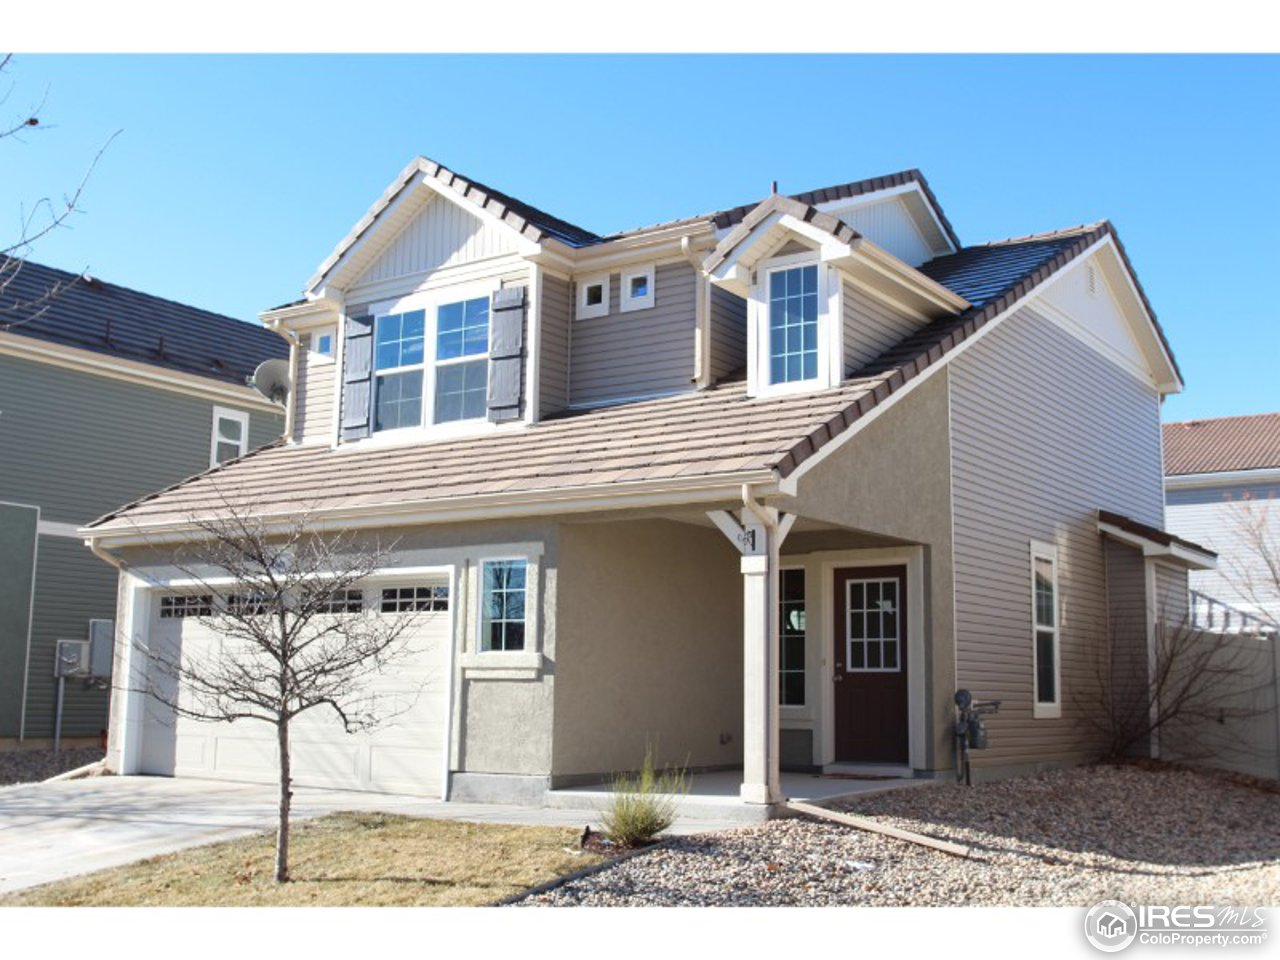 3860 Blackwood Ln Loveland Home Listings - Team Cook Real Estate